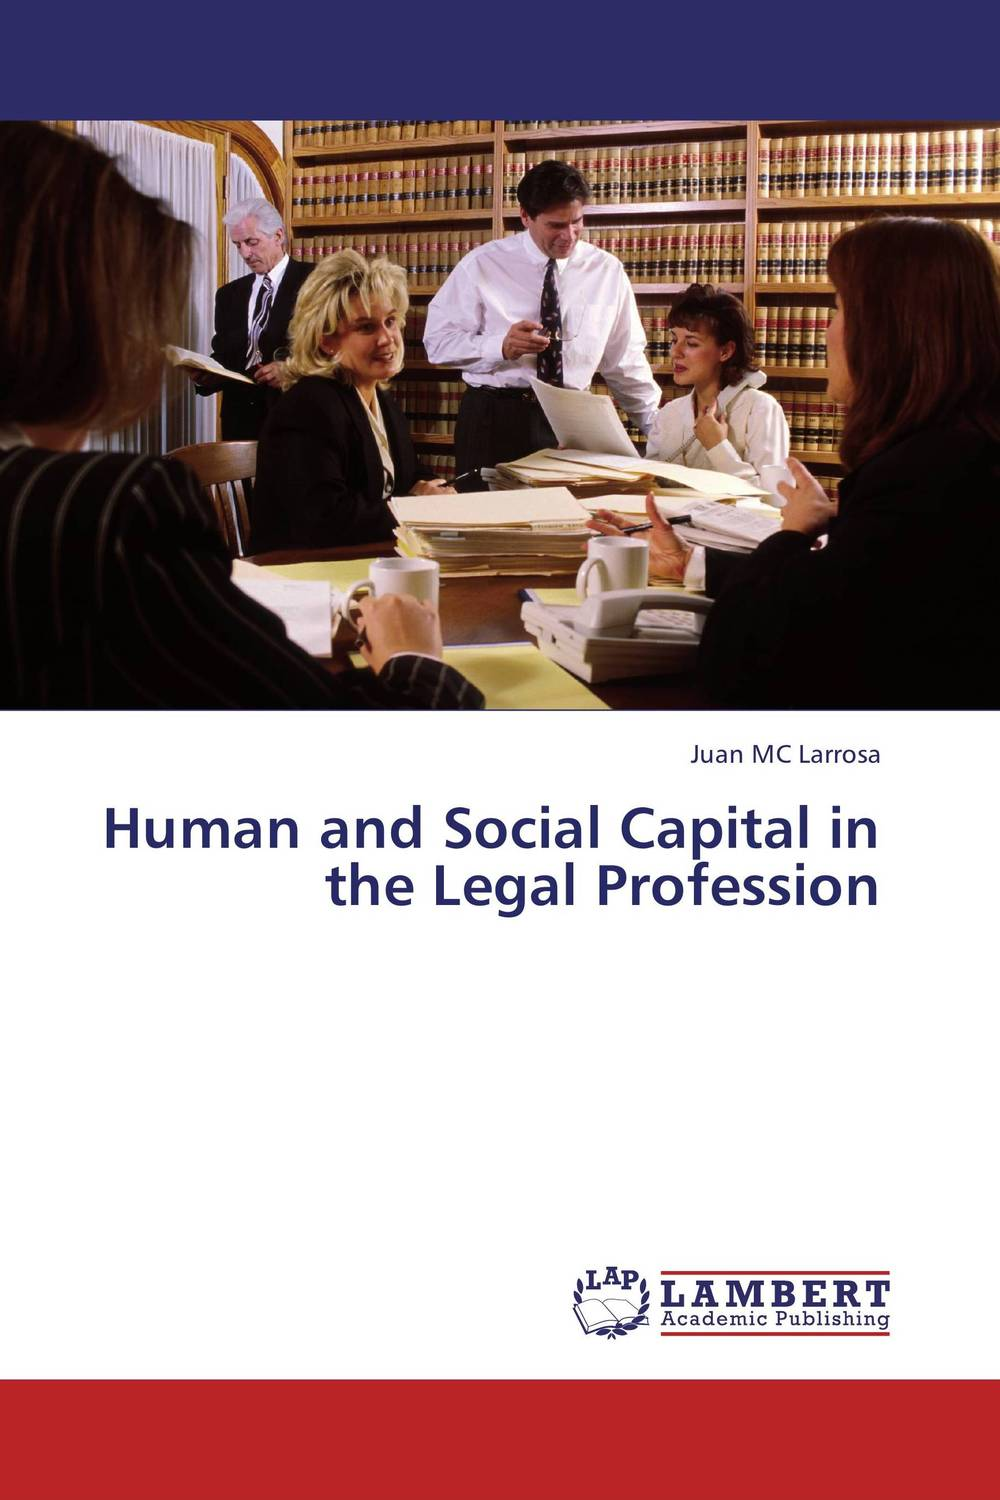 Human and Social Capital in the Legal Profession i manev social capital and strategy effectiveness an empirical study of entrepreneurial ventures in a transition economy